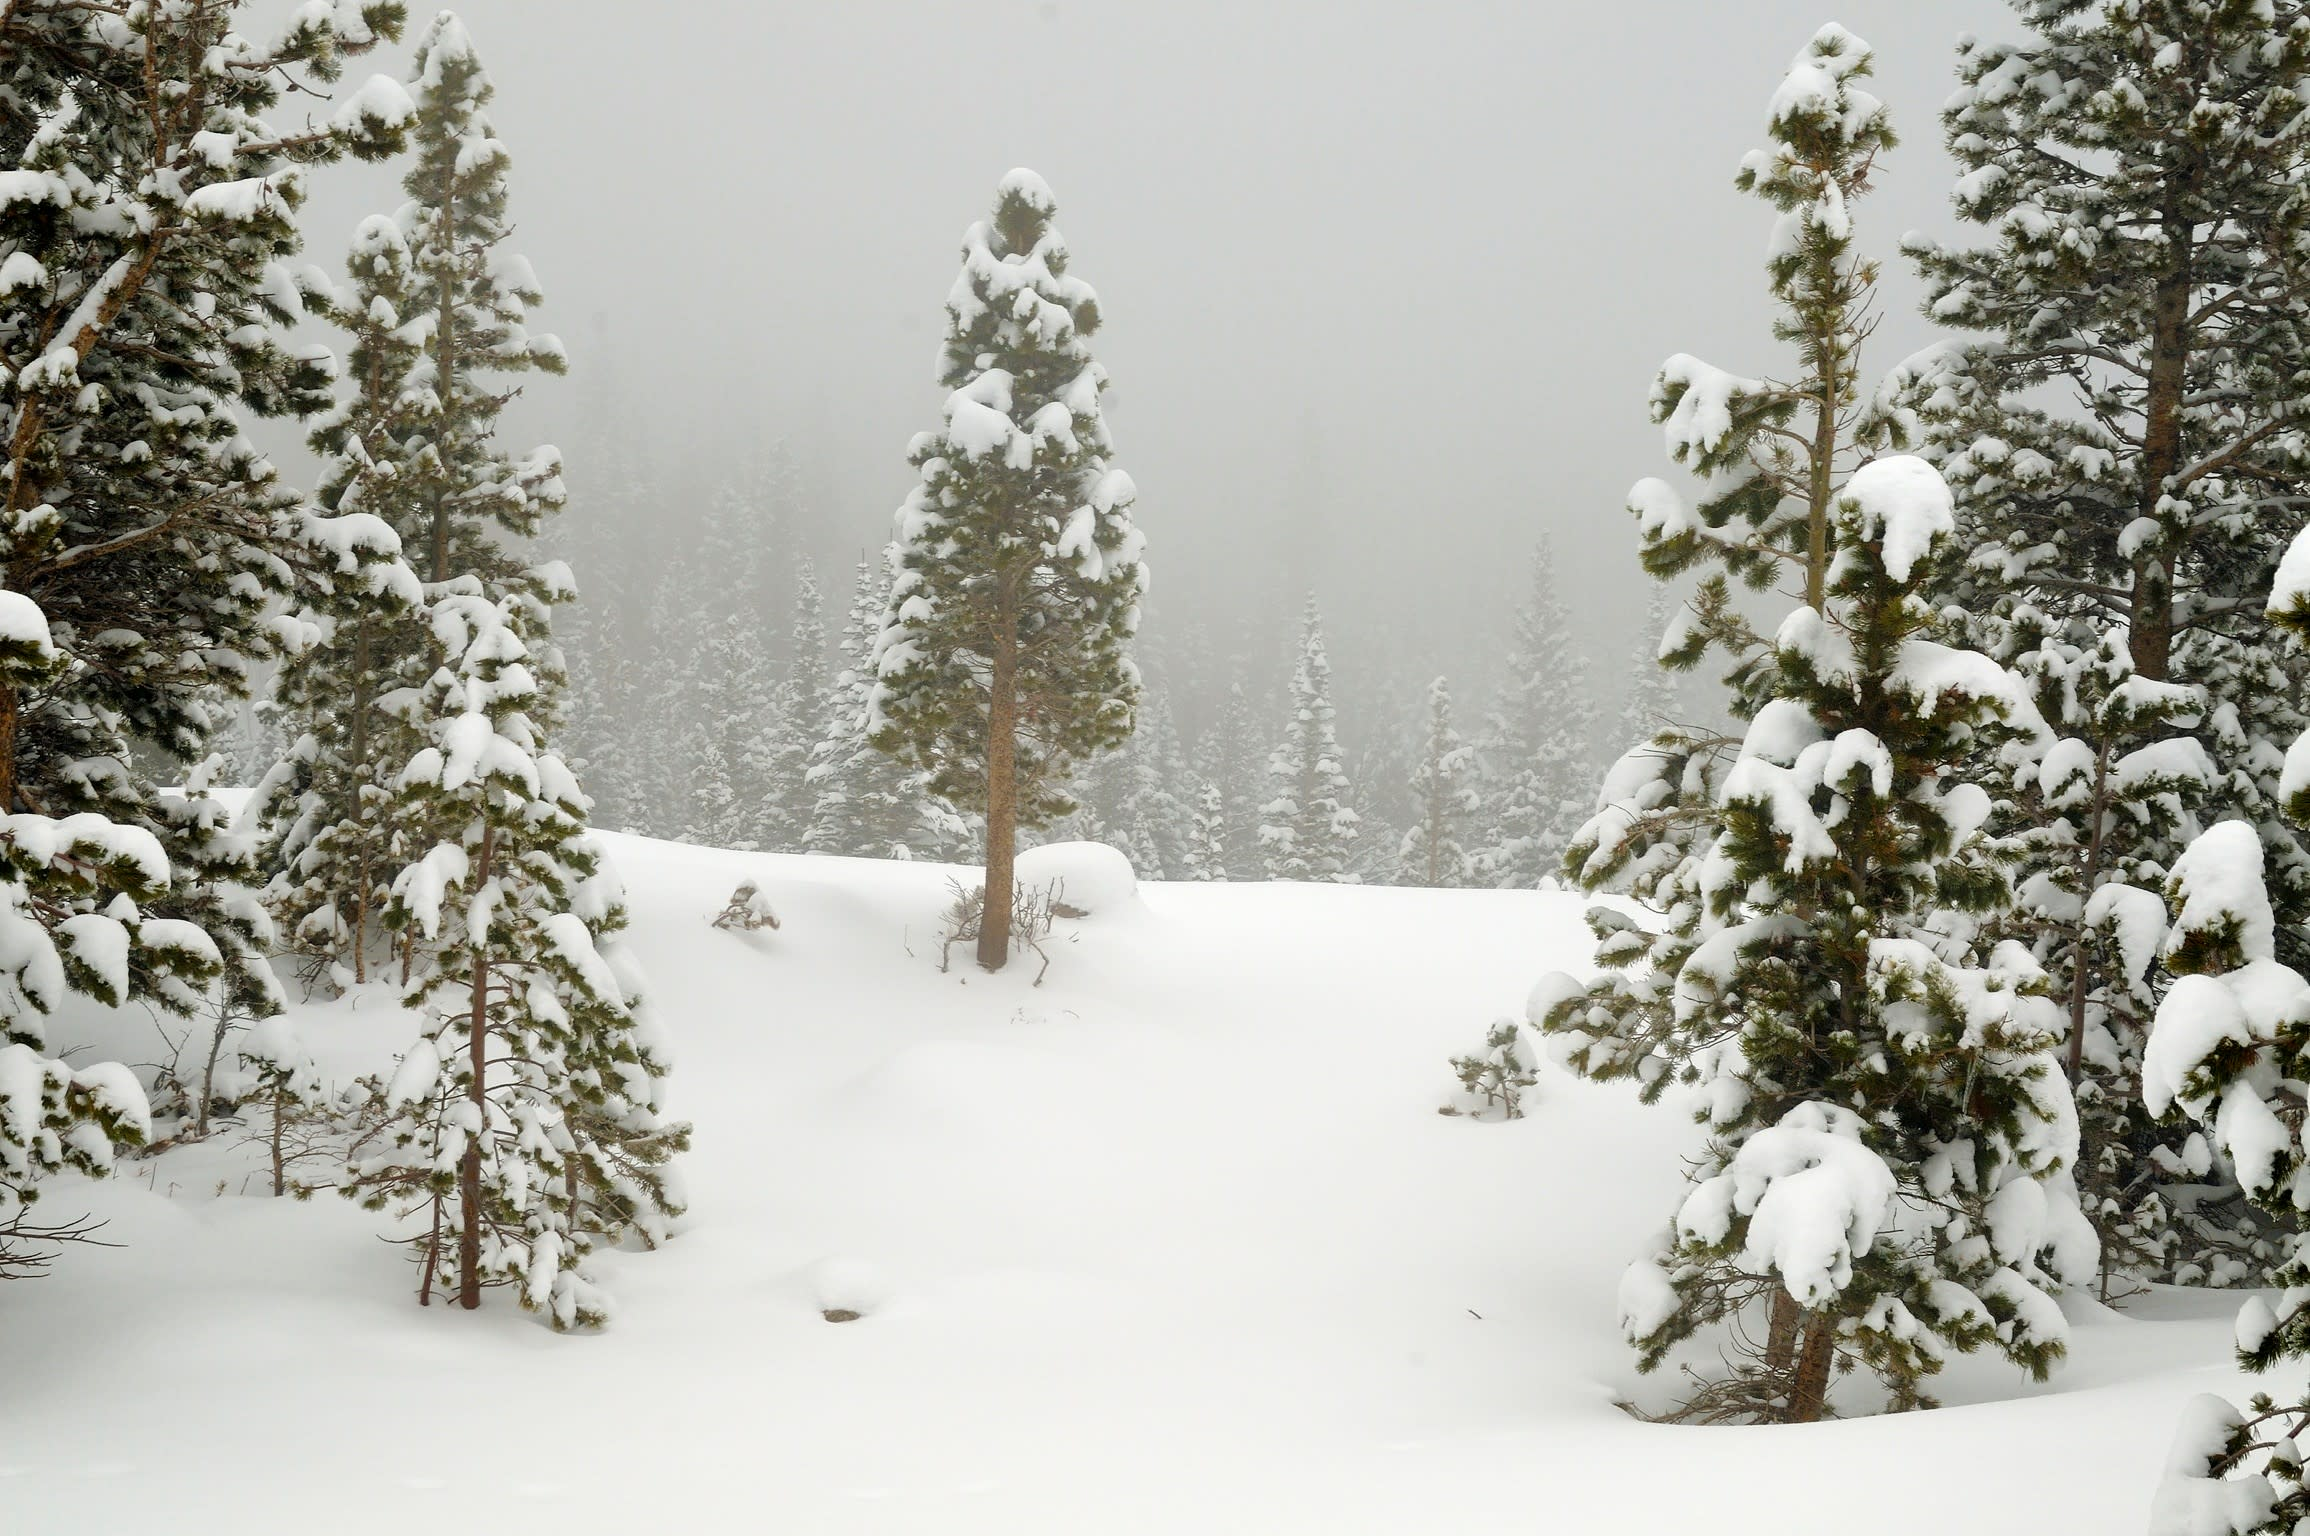 <div class='title'>           Winter in the Forest         </div>                 <div class='description'>           Low clouds hang in the pine forest like a fog as a blizzard is winding down in Rocky Mountain National Park.         </div>